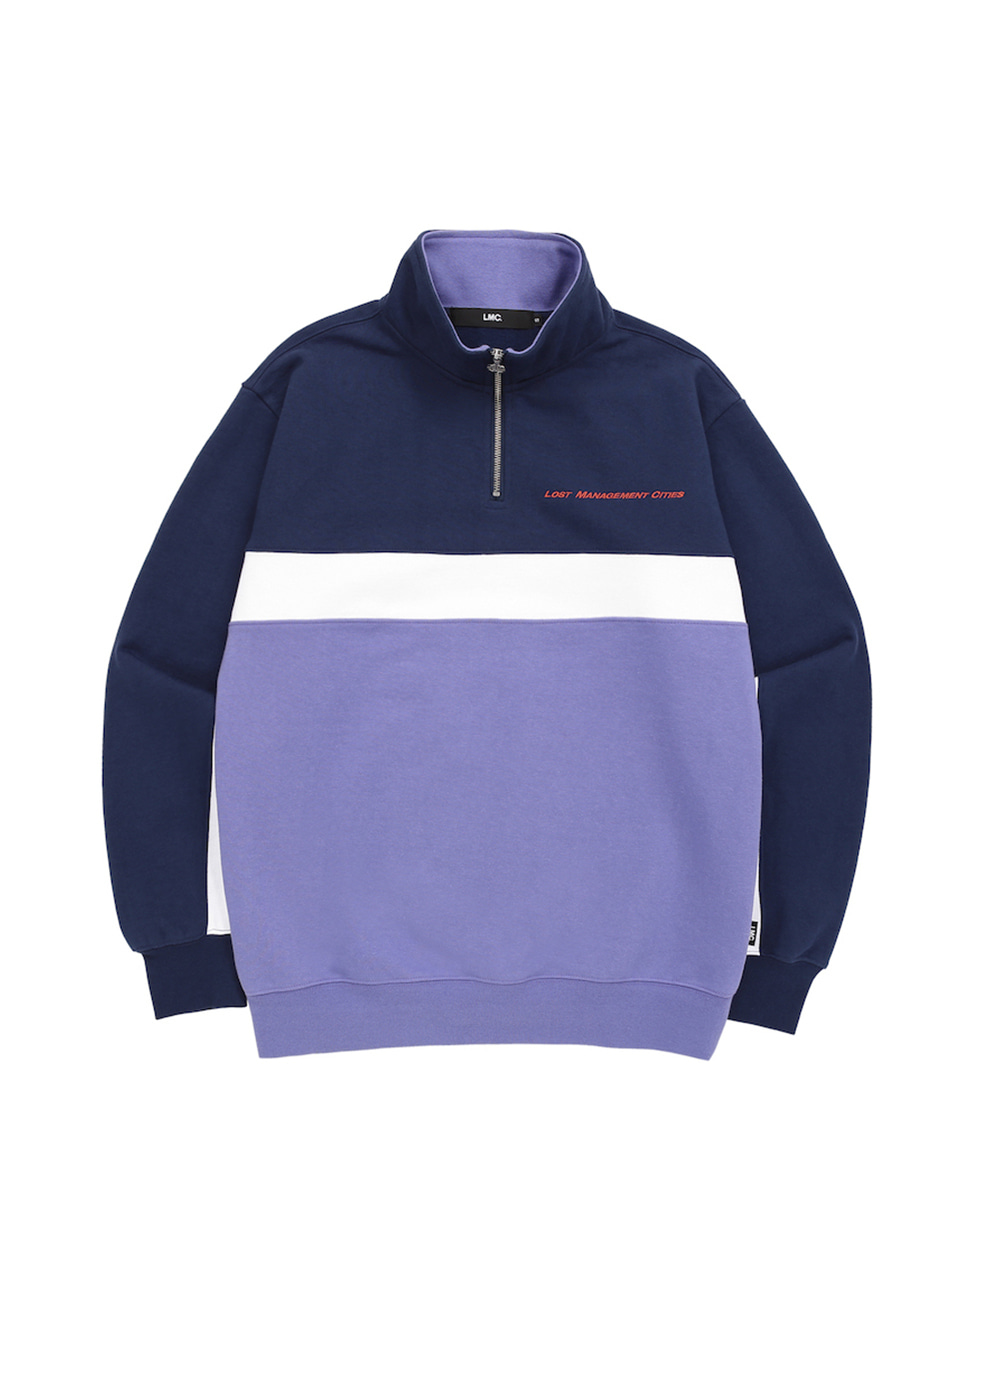 LMC TRI COLOR QUARTER ZIP SWEATSHIRT navy